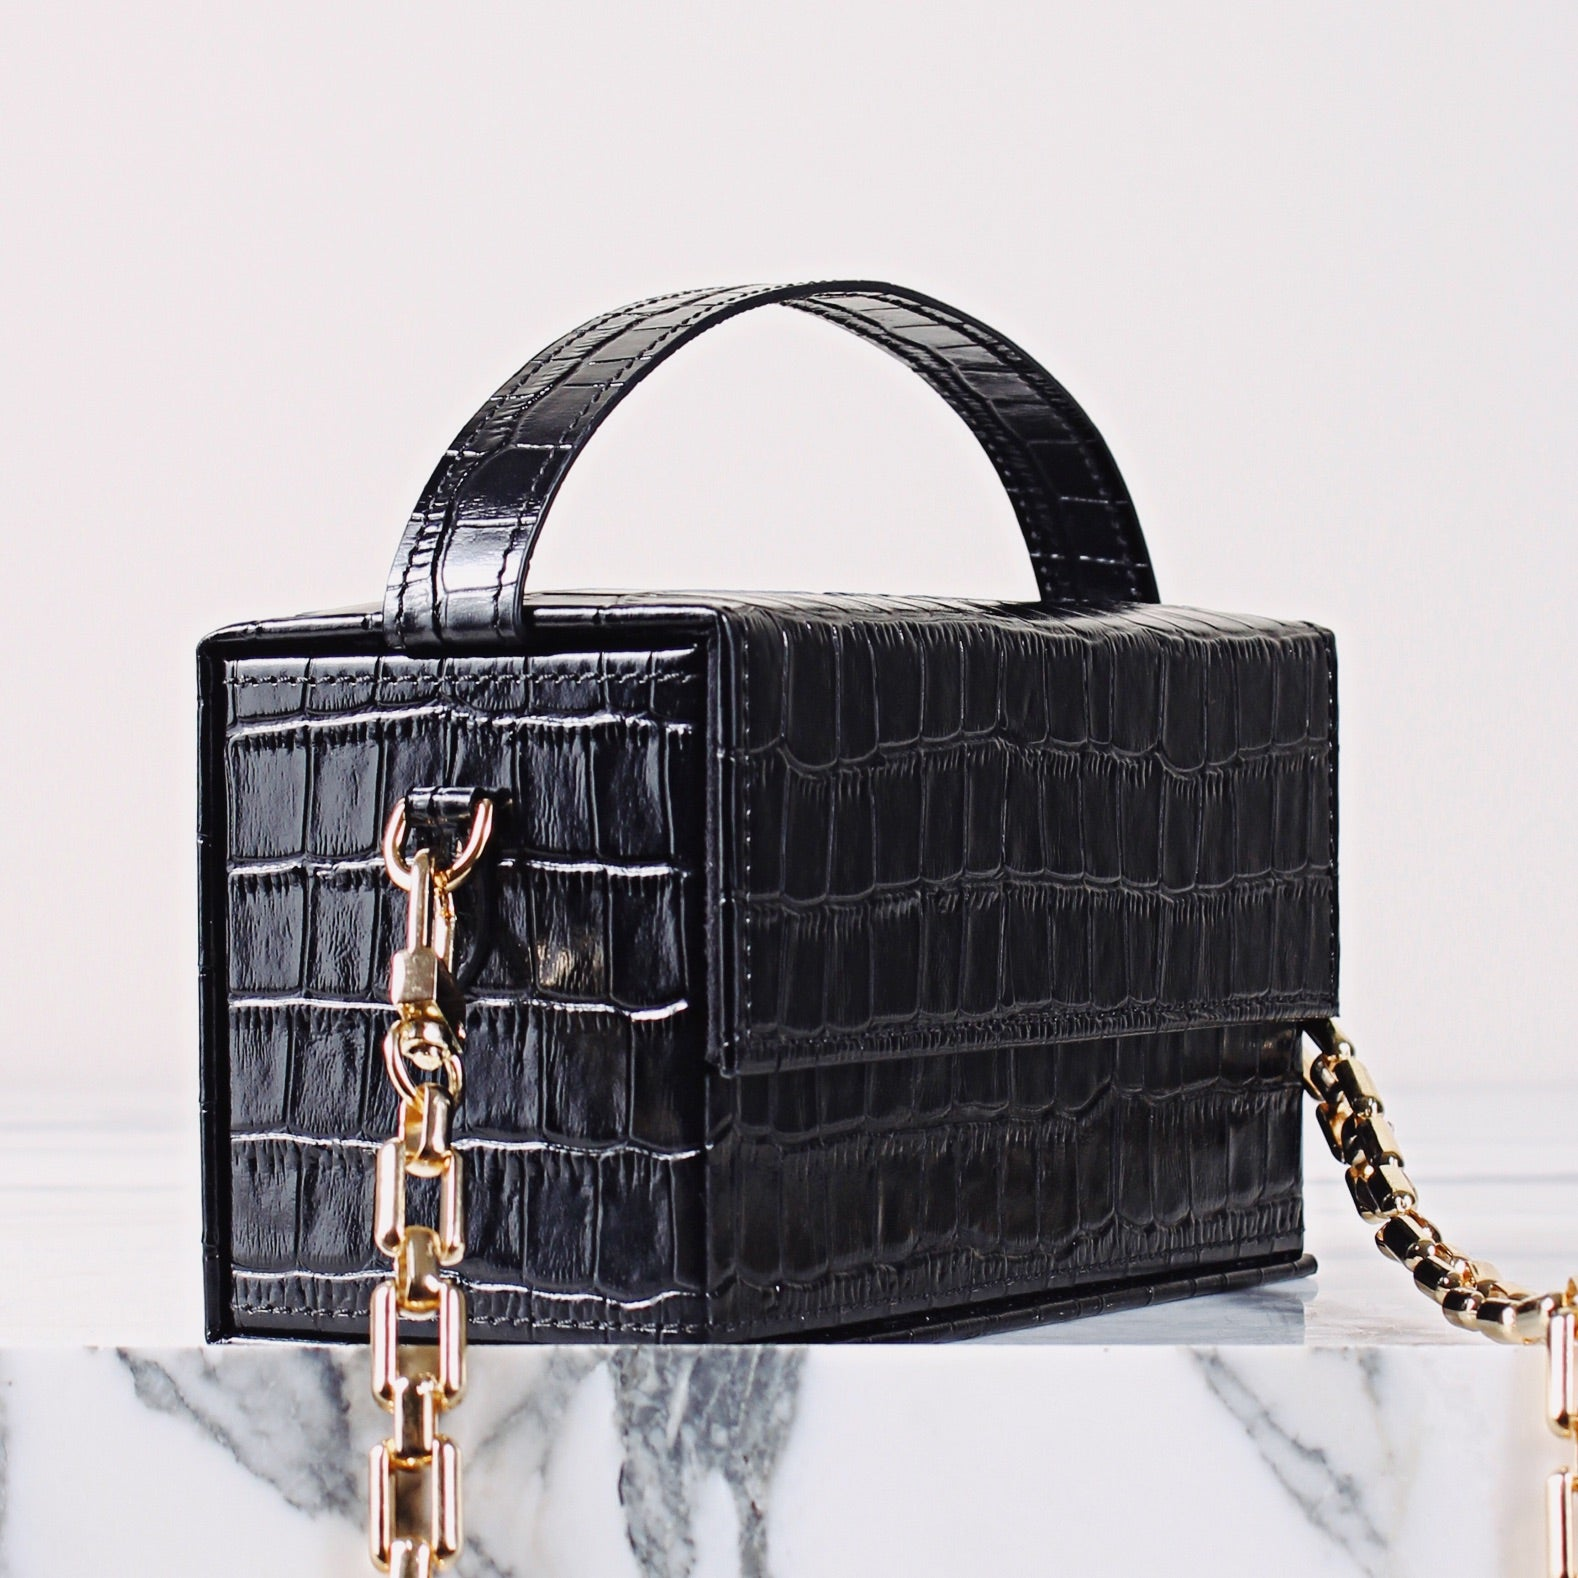 IDA Black Croc (Small) with Chain